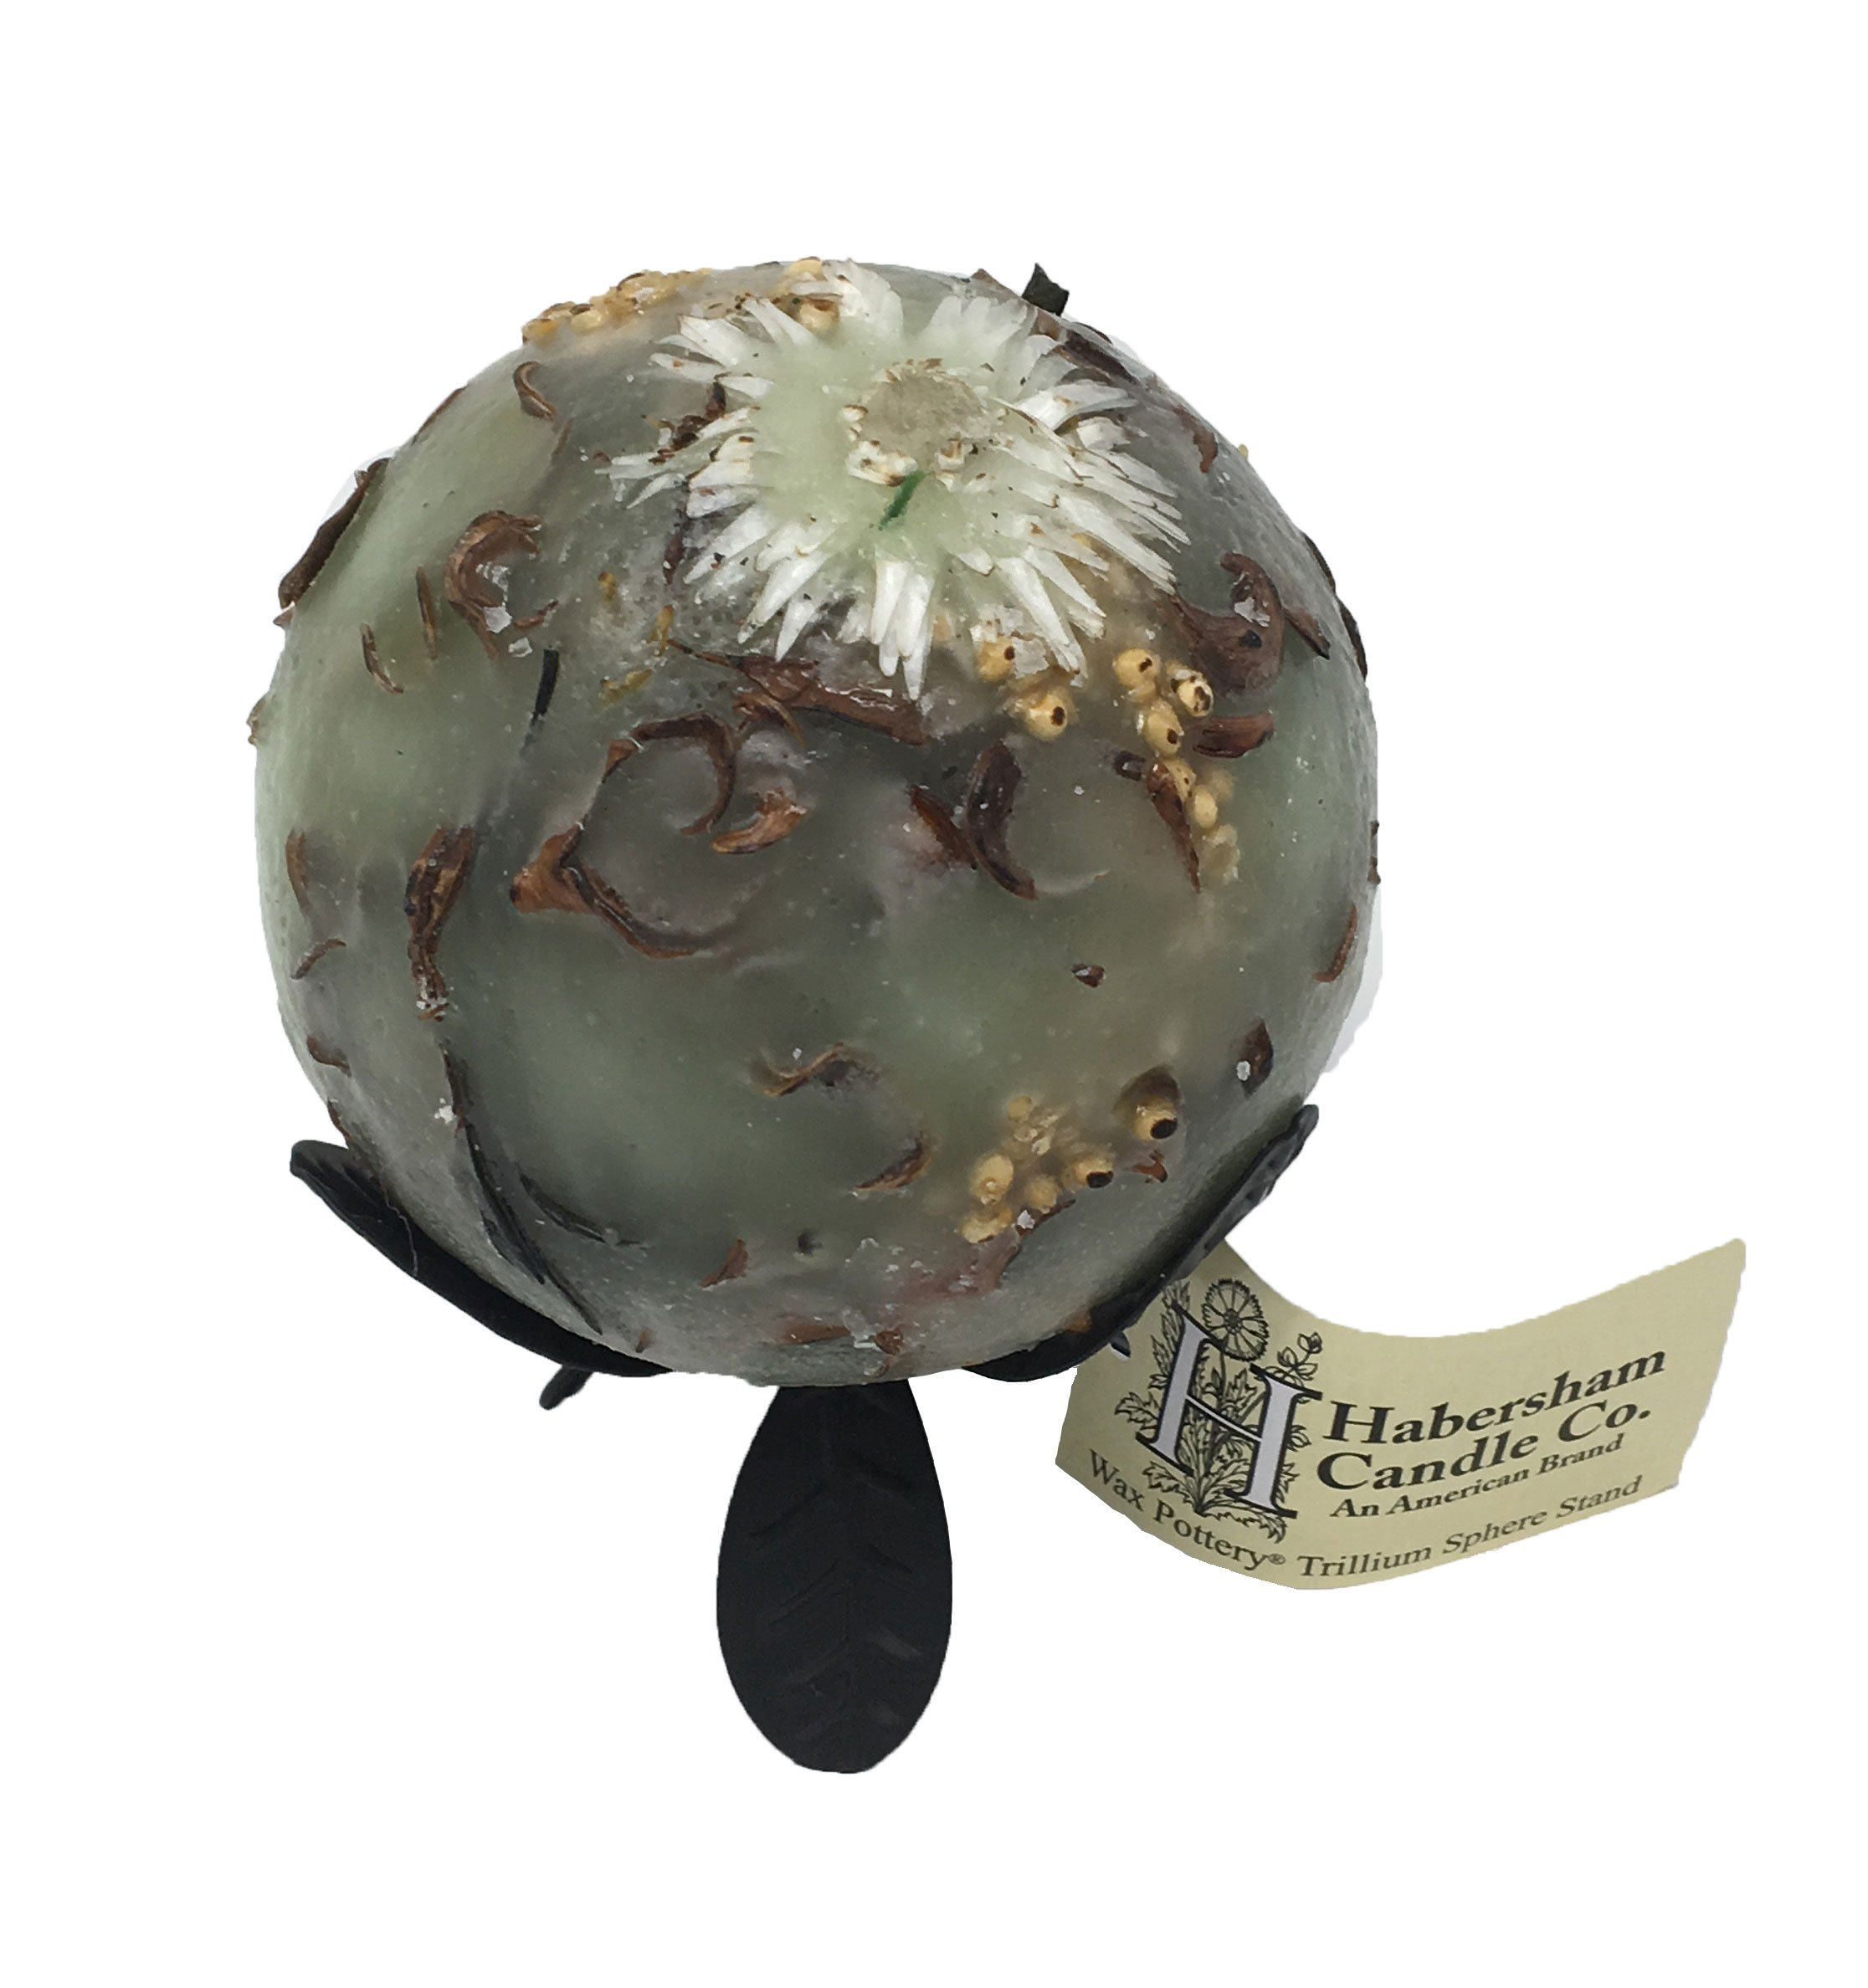 Habersham Candle Wax Pottery Spheres, 4-Inch Diameter with Black Trillium Stand, Habersham Sage